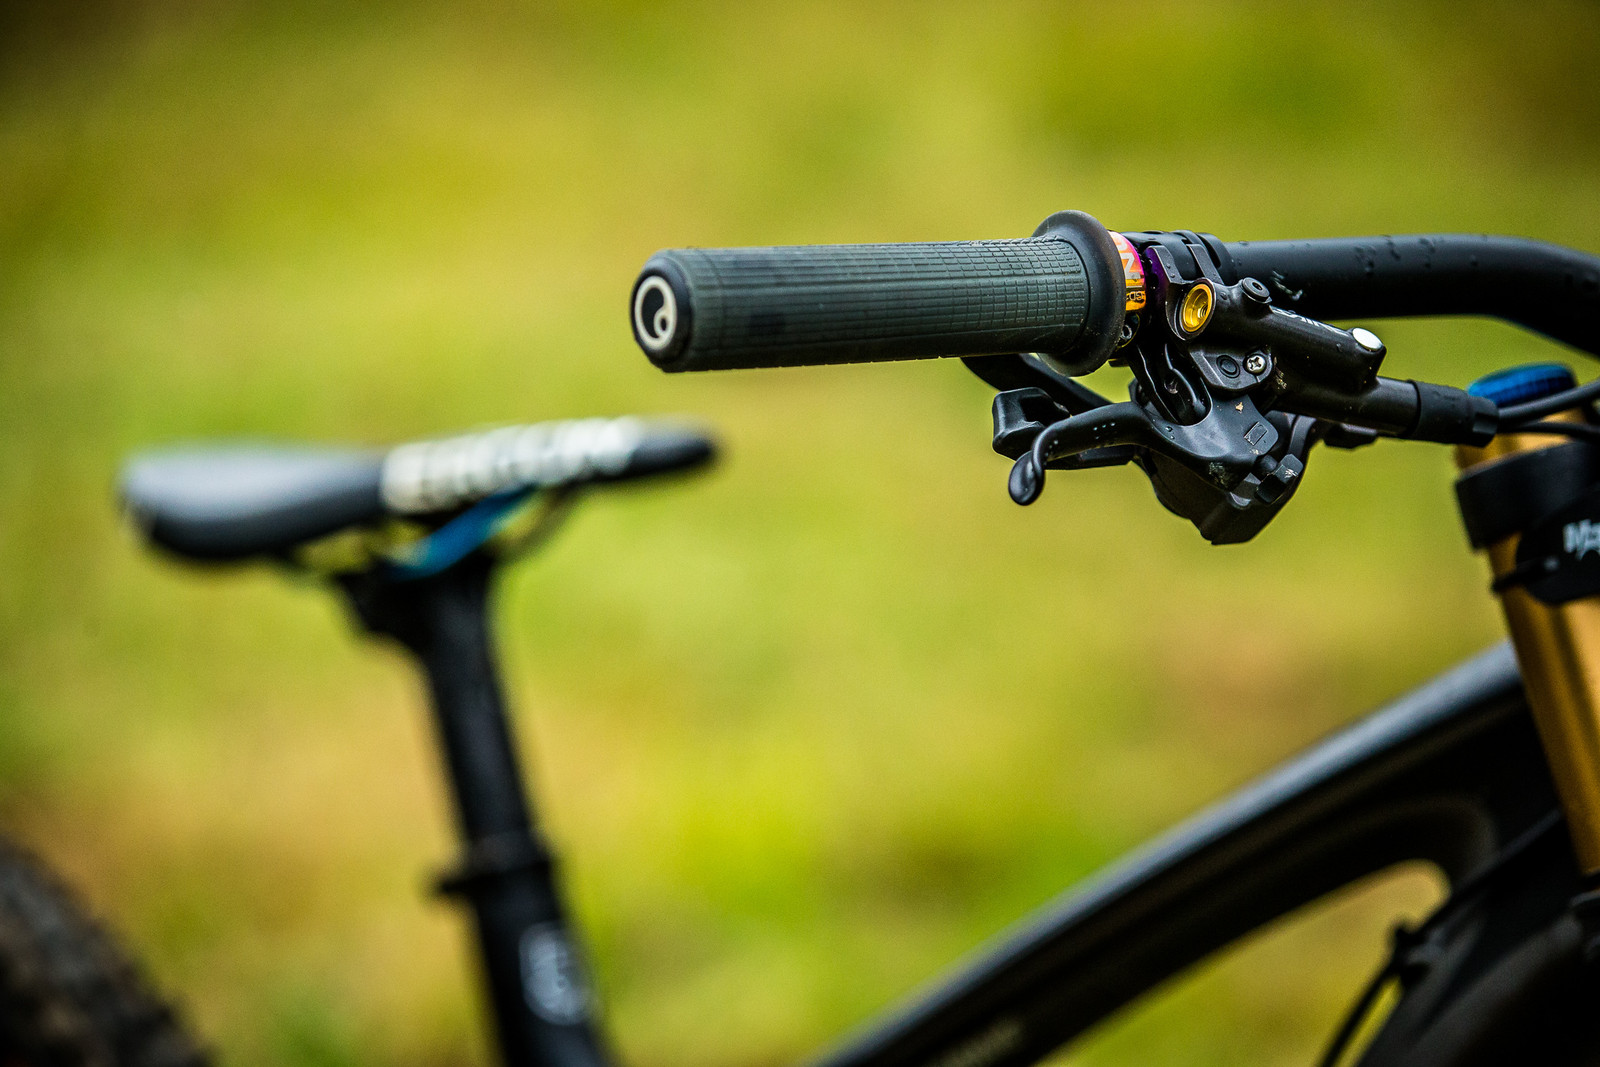 Ergon GD1 MTB Gravity Grips - WINNING BIKE: Tahnee Seagrave's Transition TR11 - Mountain Biking Pictures - Vital MTB